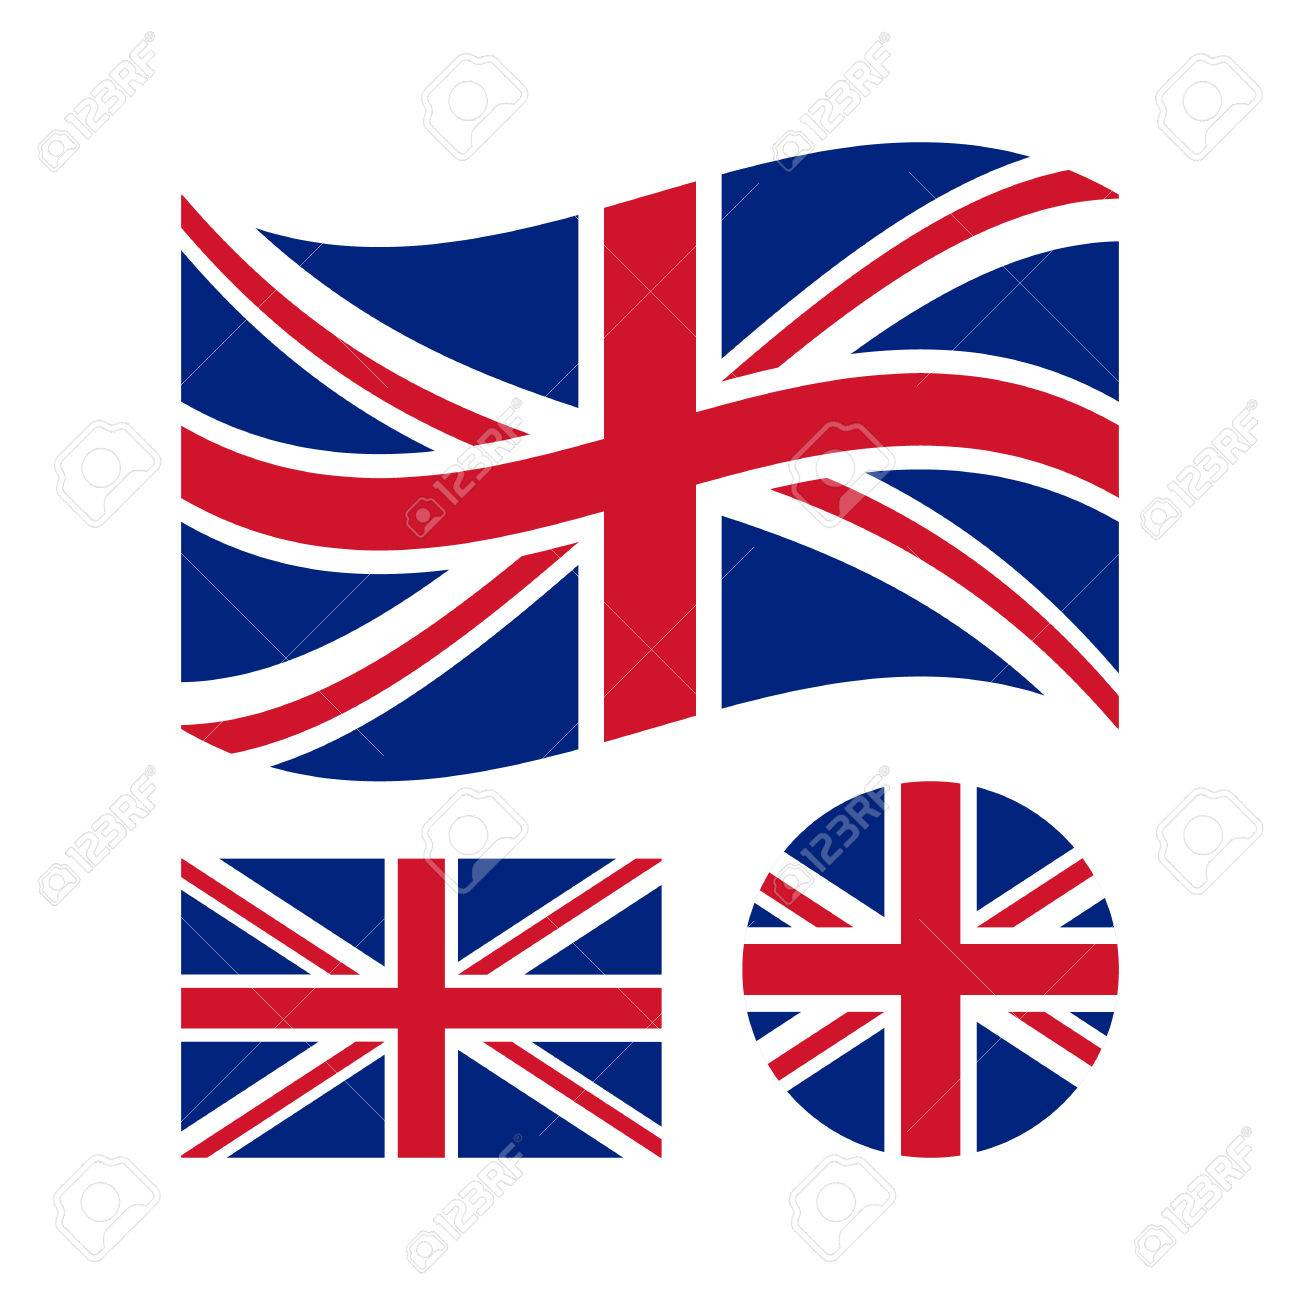 great britain flag set rectangular waving and circle union rh 123rf com union jack vector logo union jack vector download